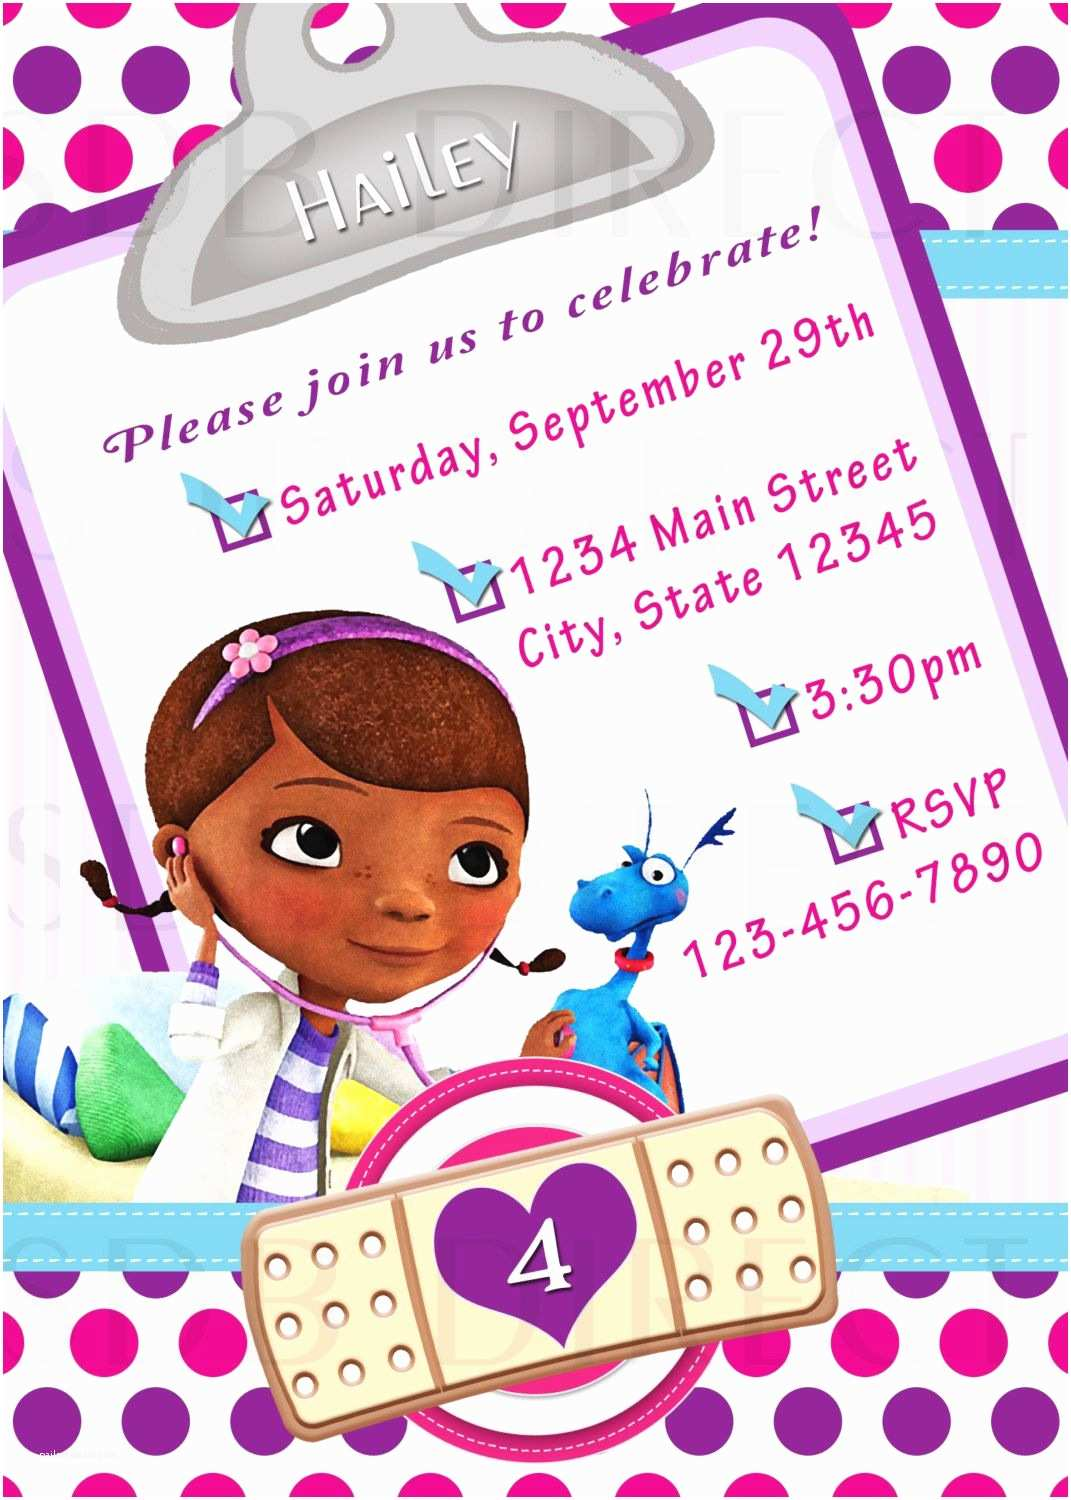 Doc Mcstuffins Birthday Invitations Cute Doc Mcstuffins Digital Birthday Party Invitations $9